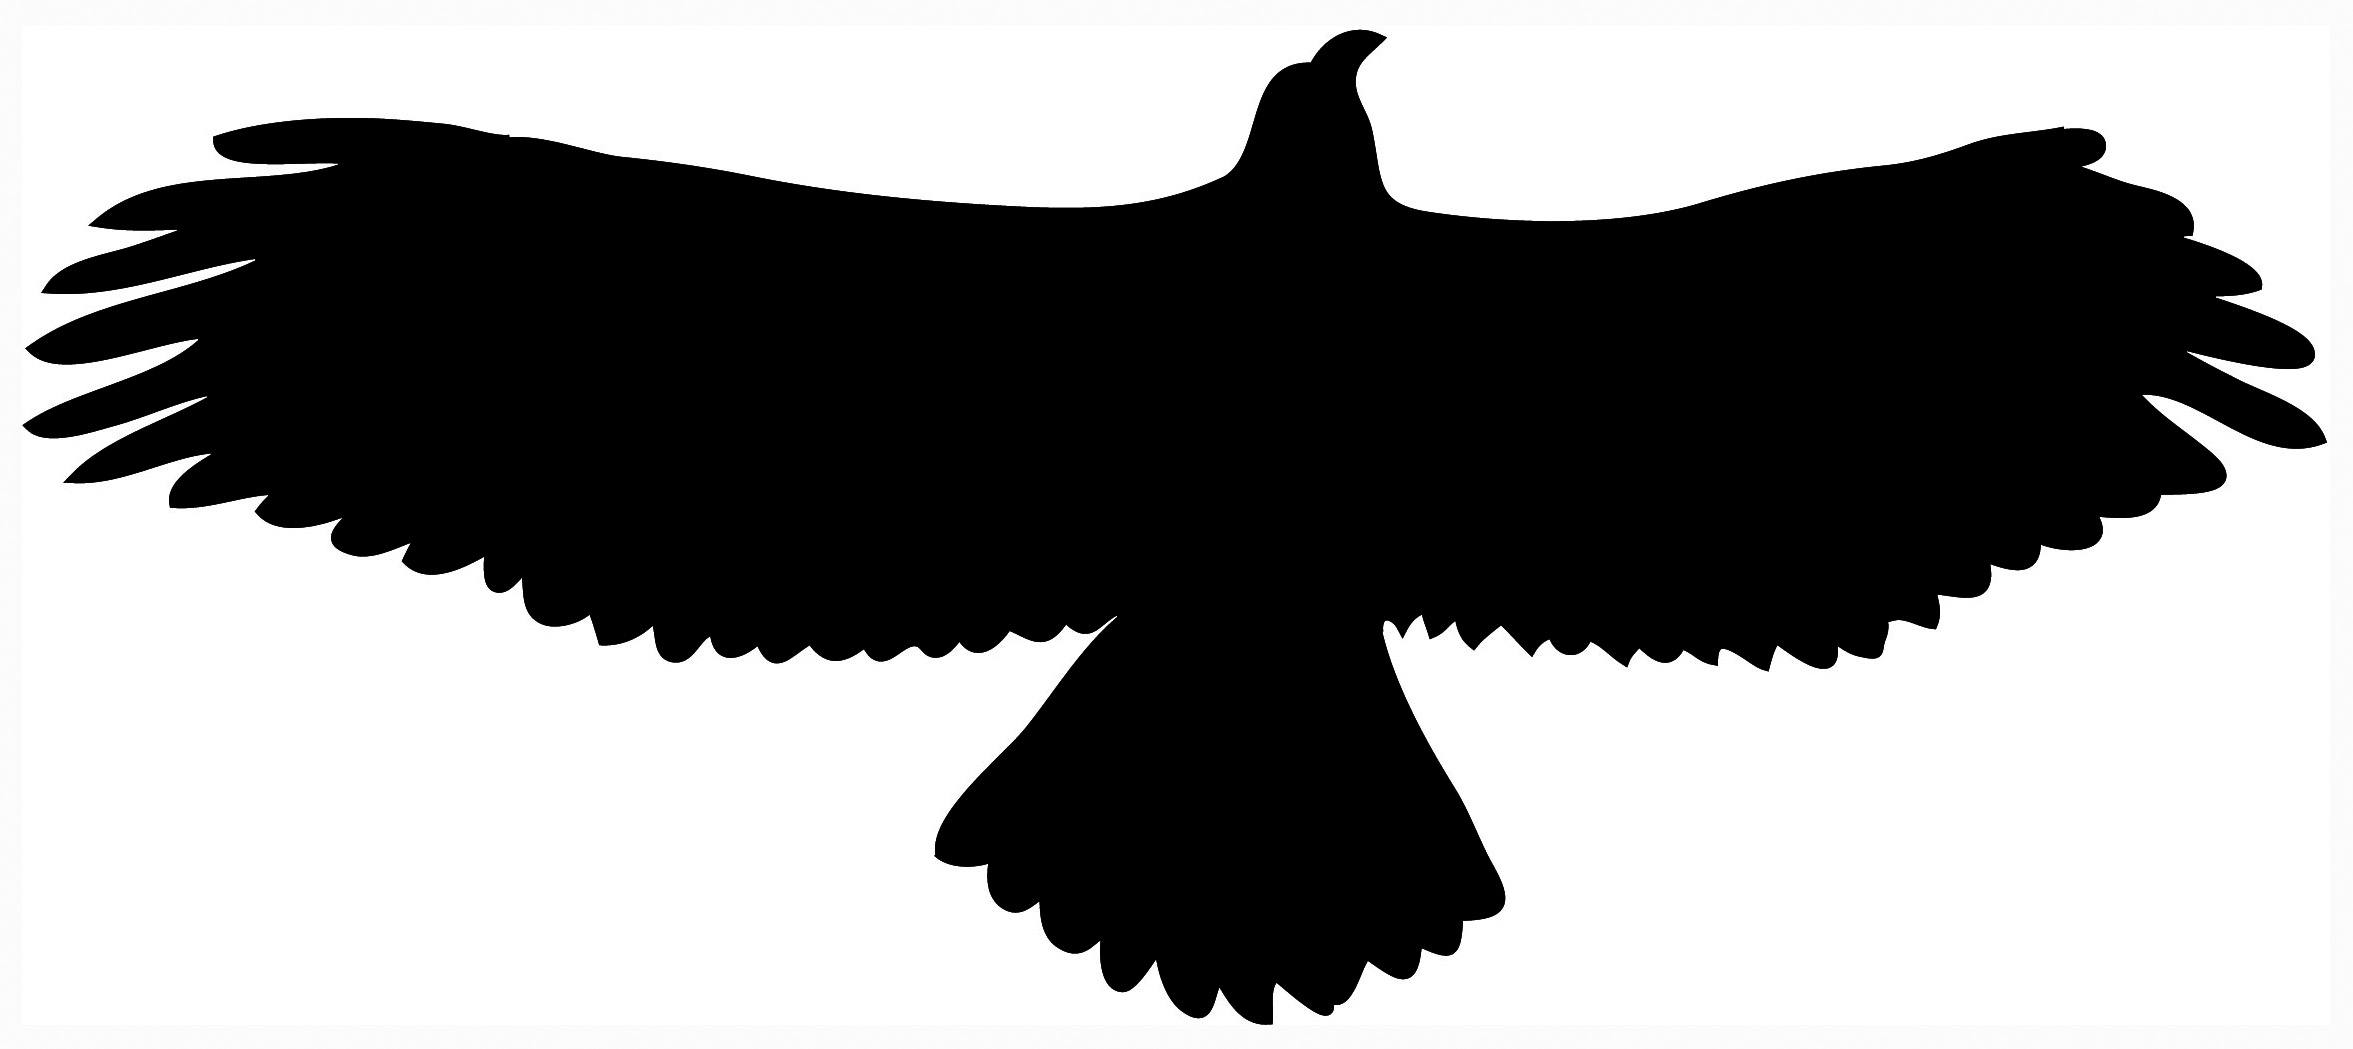 Flying Eagle Clip Art - Cliparts.co